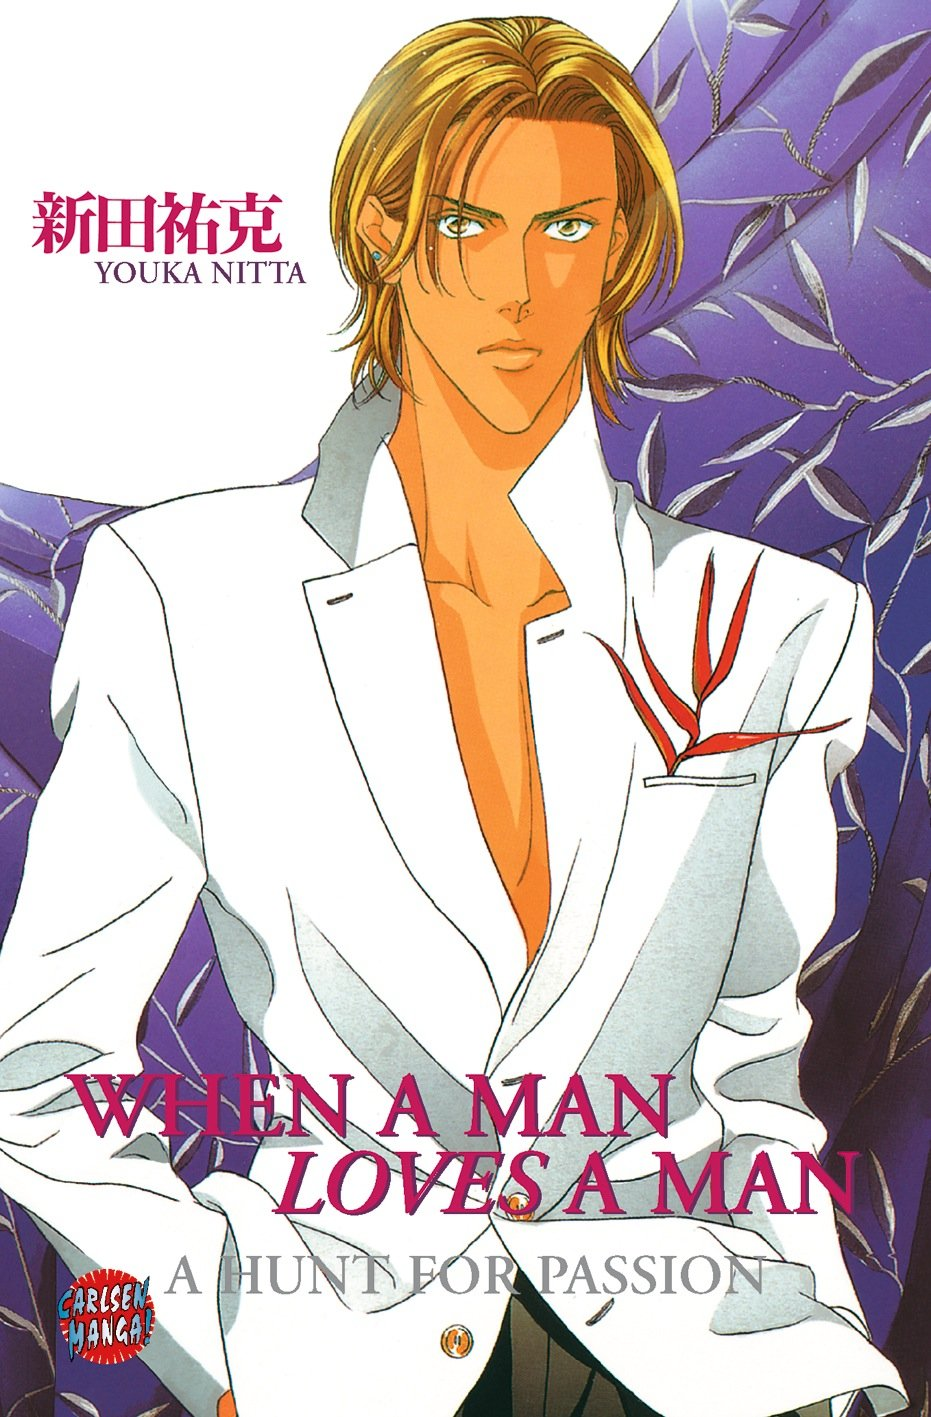 When A Man Loves A Man: A Hunt For Passion (Carlsen Comics)